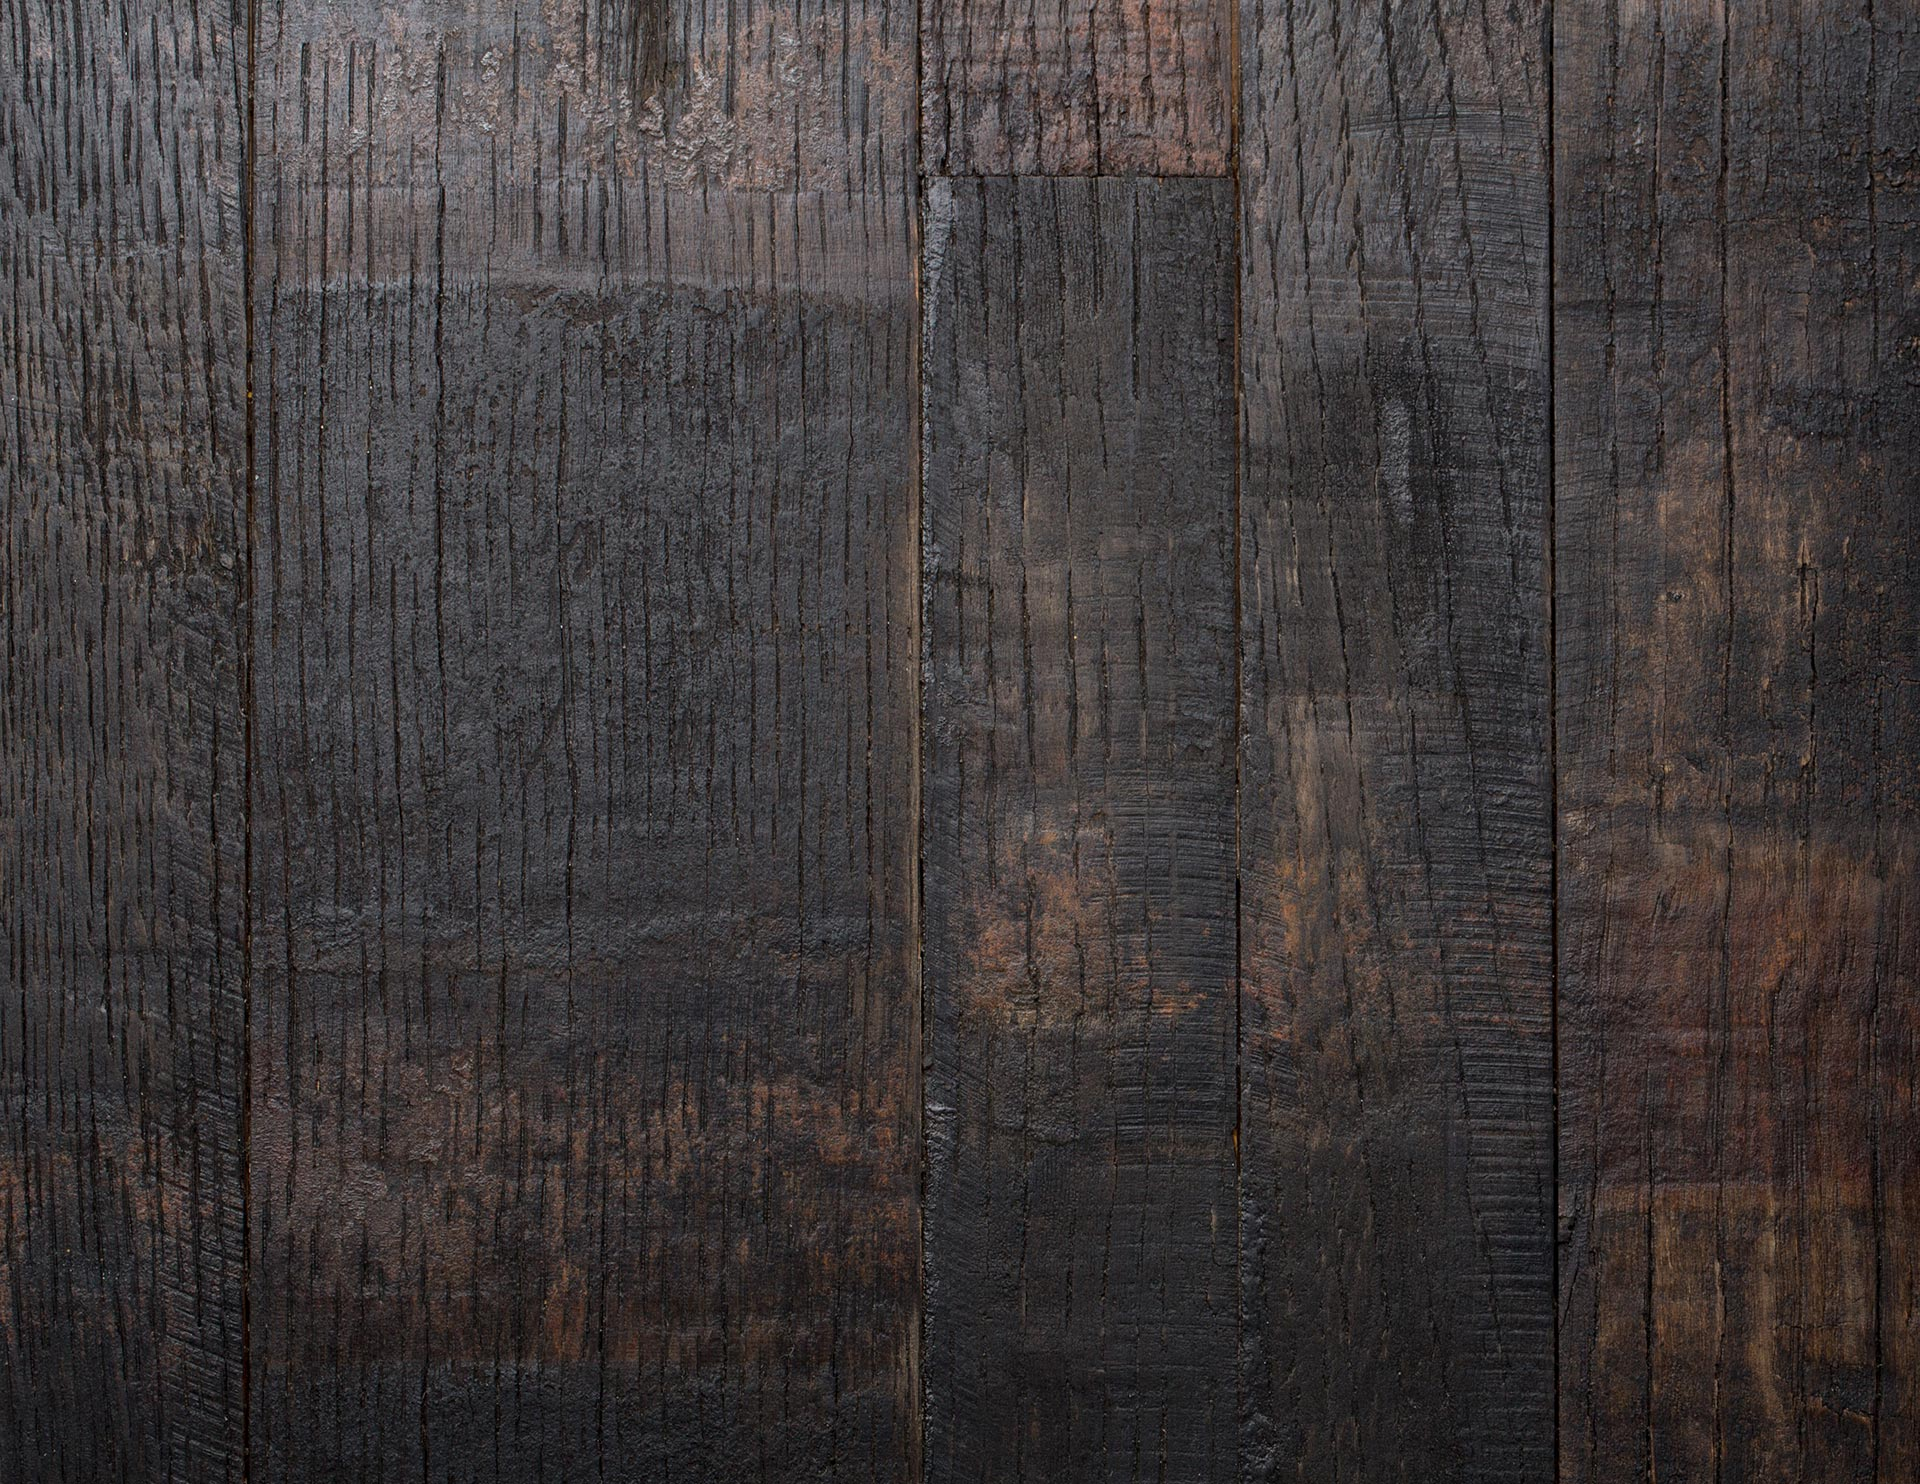 backgrounds and textures creating a steakhouse website using wordpress